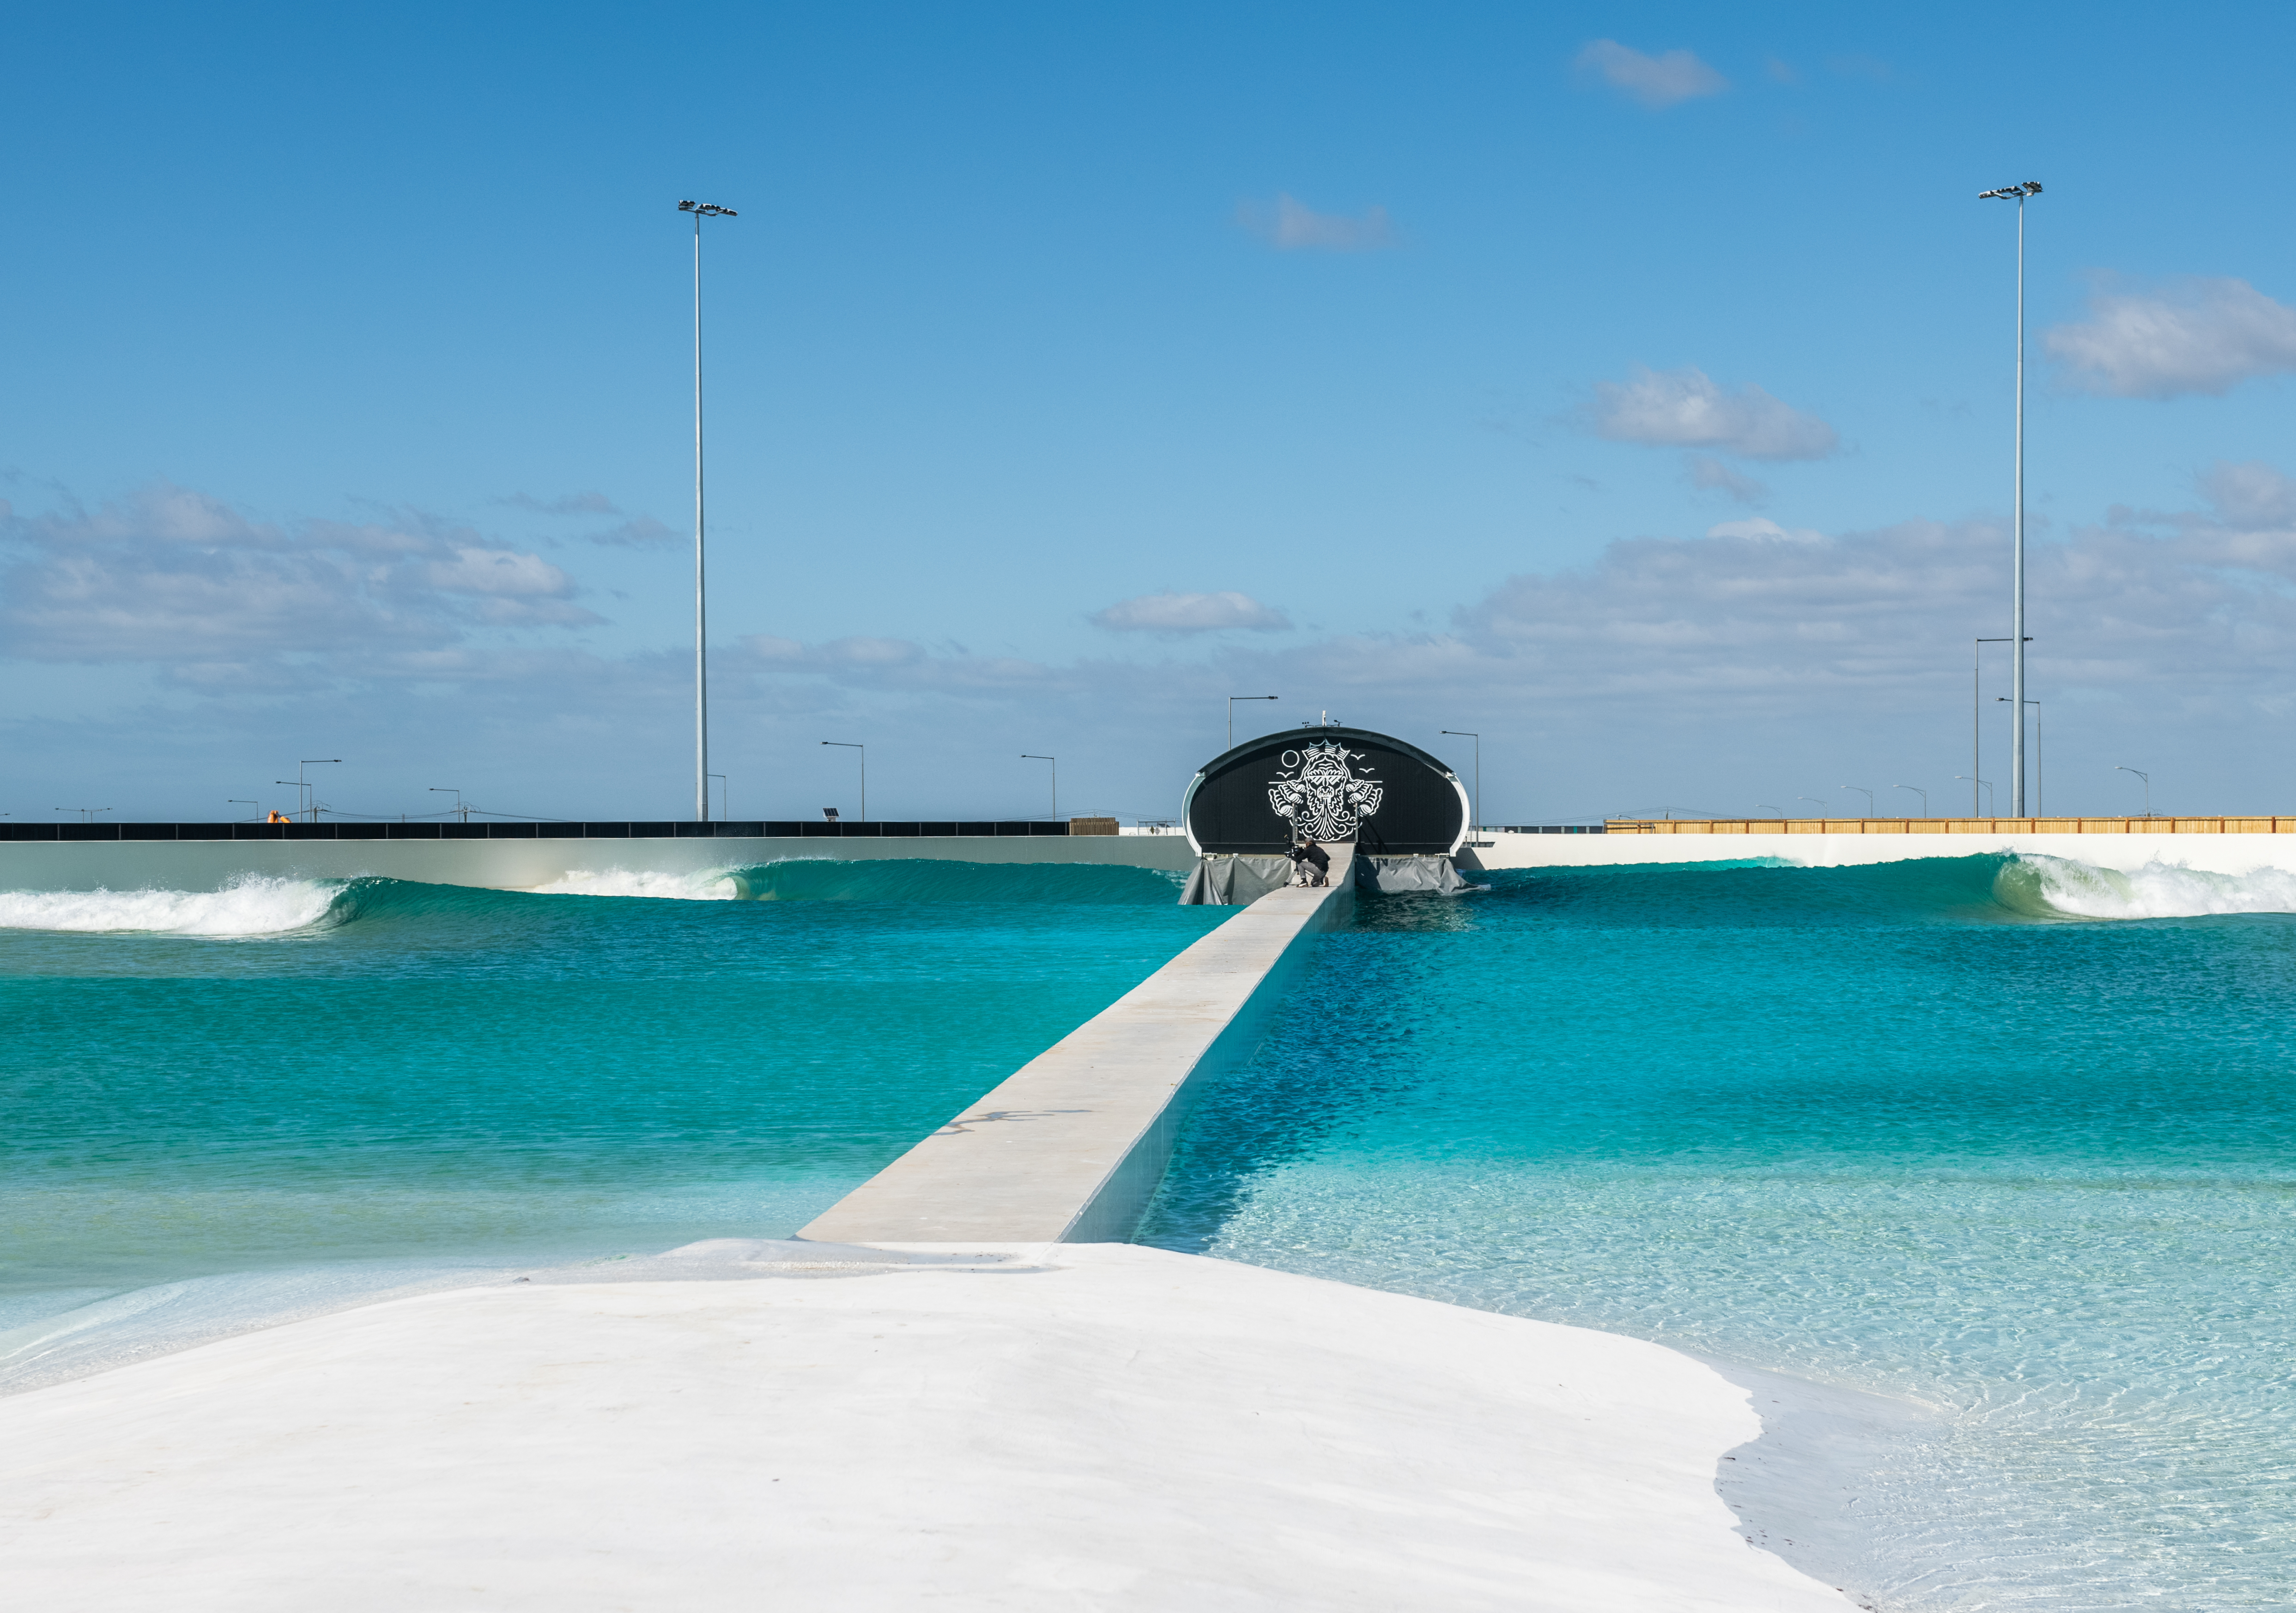 Coming Soon Urbnsurf S Opening Is The Most Anticipated Australian Surf Event Of The Year